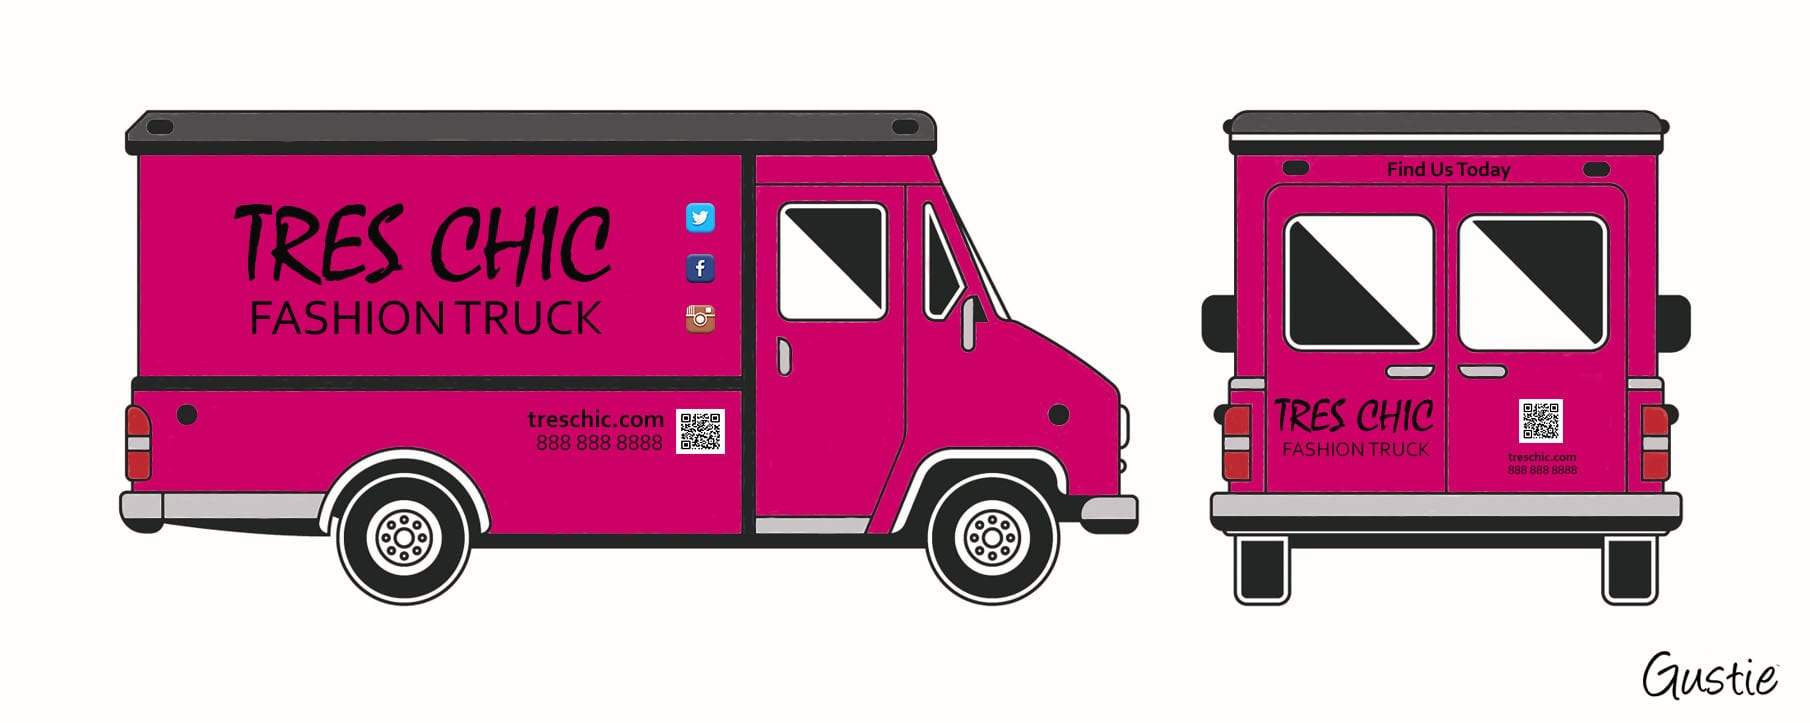 FA, Fashion Truck, Create Disruptive Retail, Gustie Creative LLC